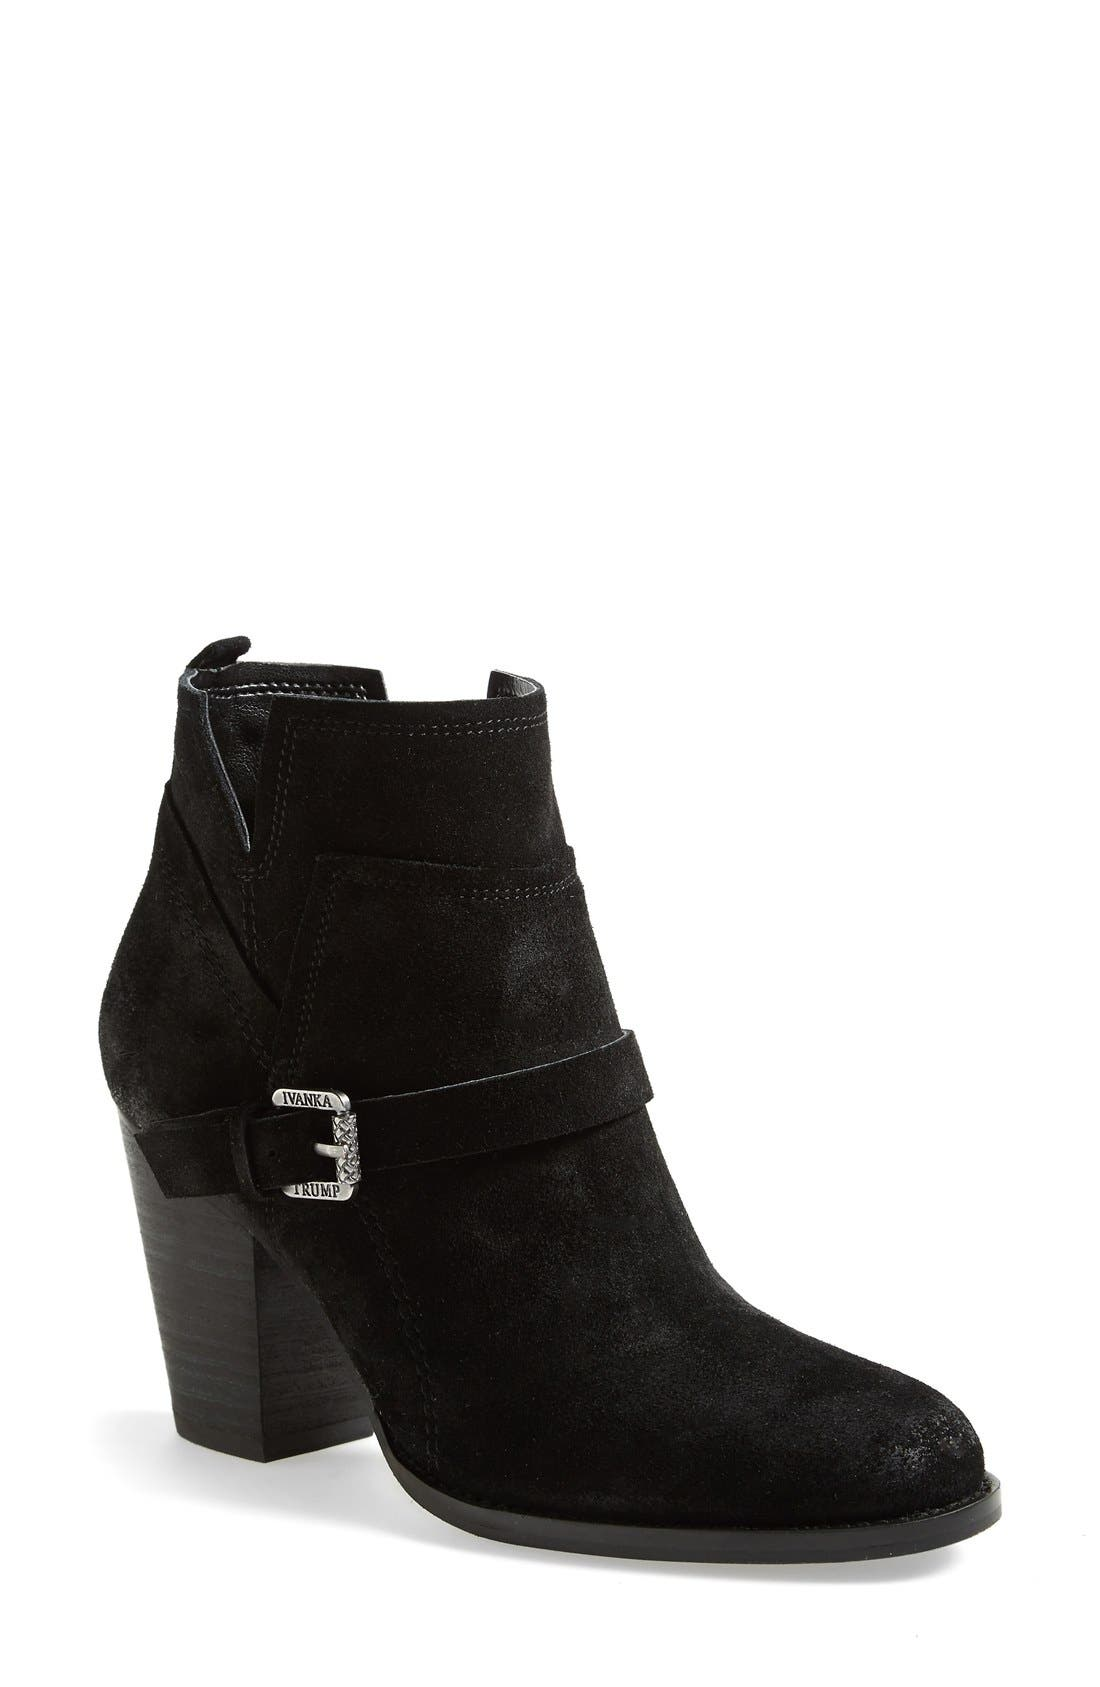 IVANKA TRUMP,                             'Frankly' Belted Round Toe Bootie,                             Main thumbnail 1, color,                             001